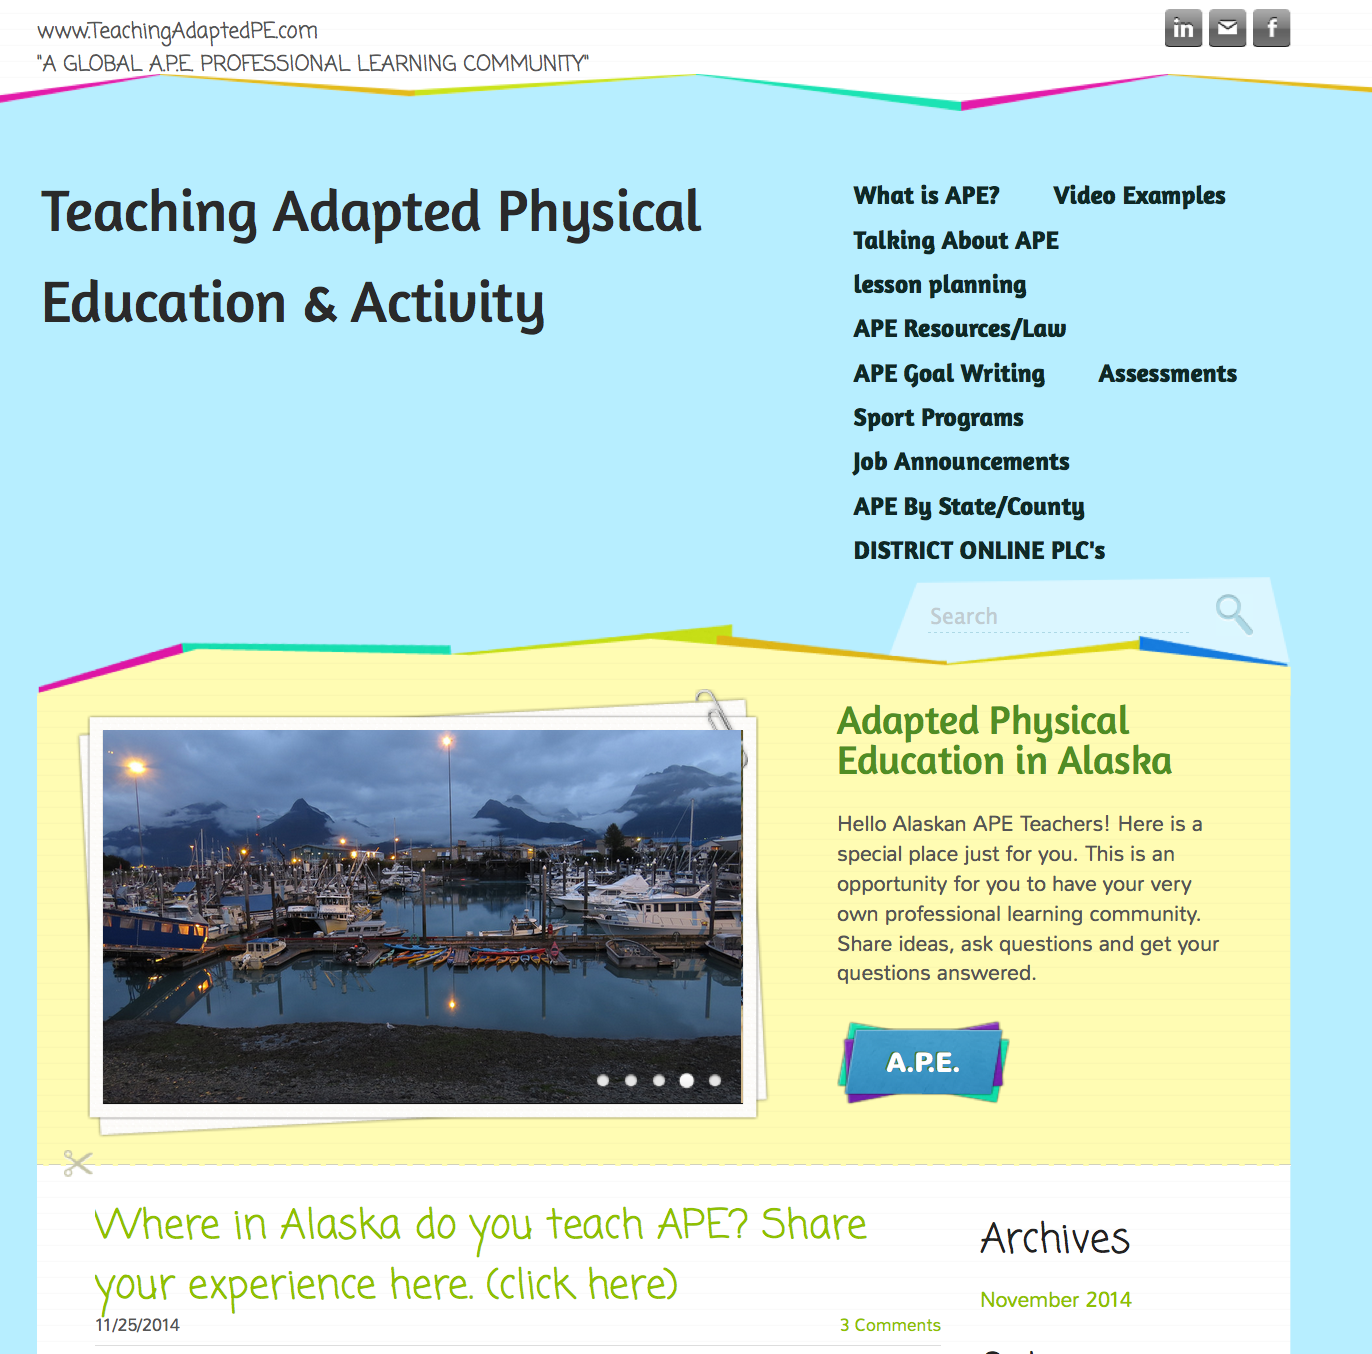 Visit, comment and share on Alaska's own Adaptive PE Blog!